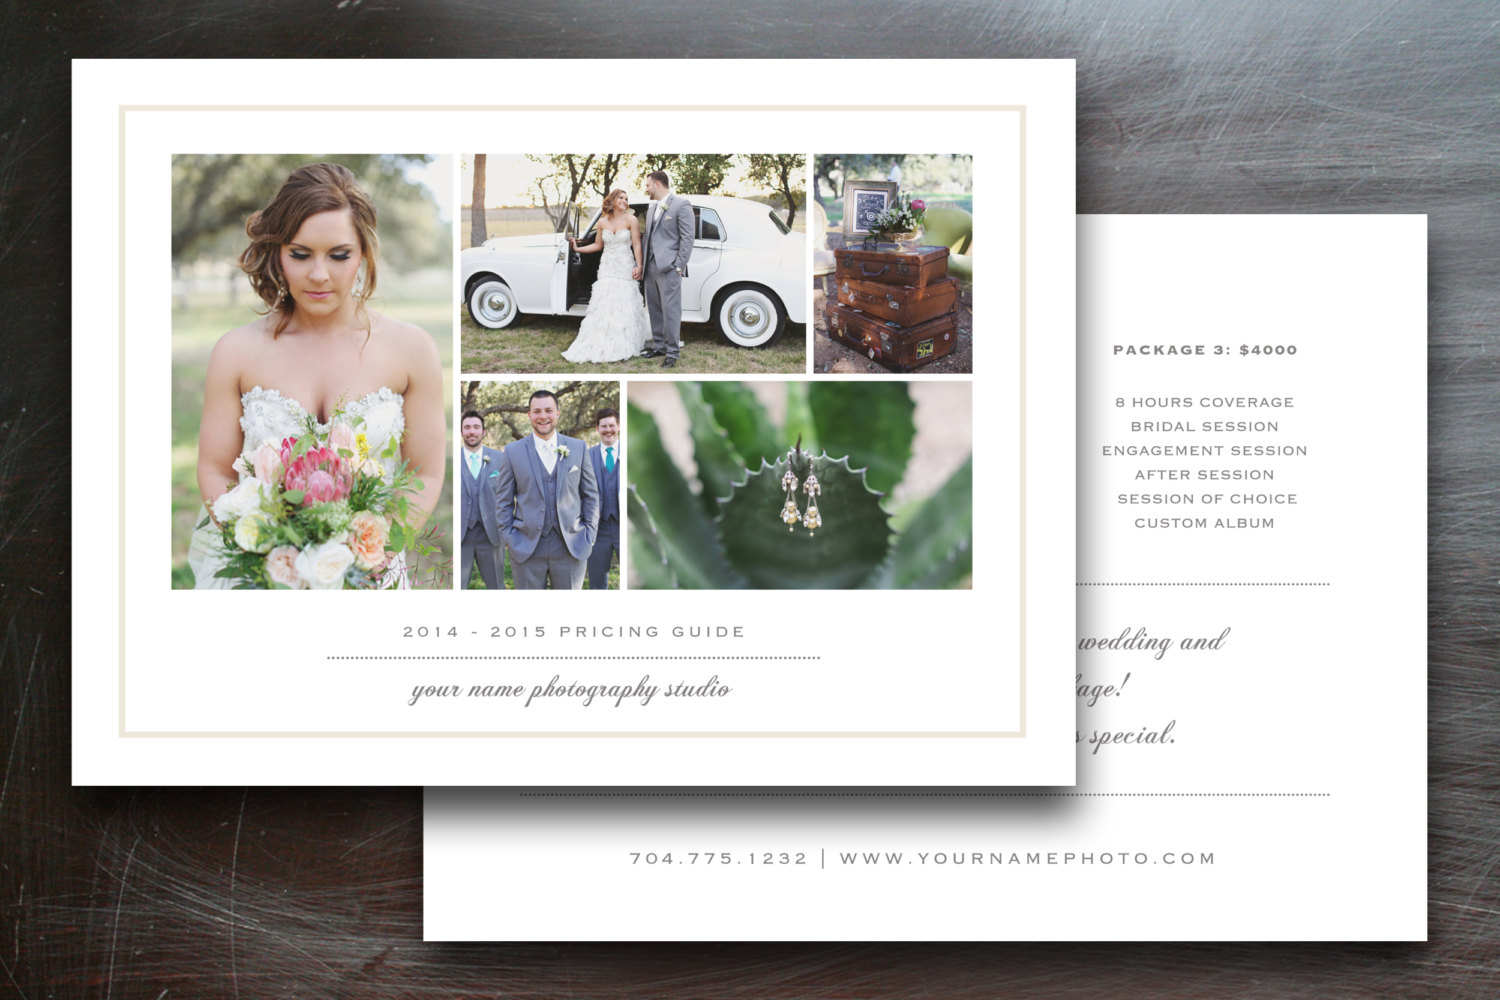 Wedding photography pricing guide brochure templates on for Photography brochure templates free